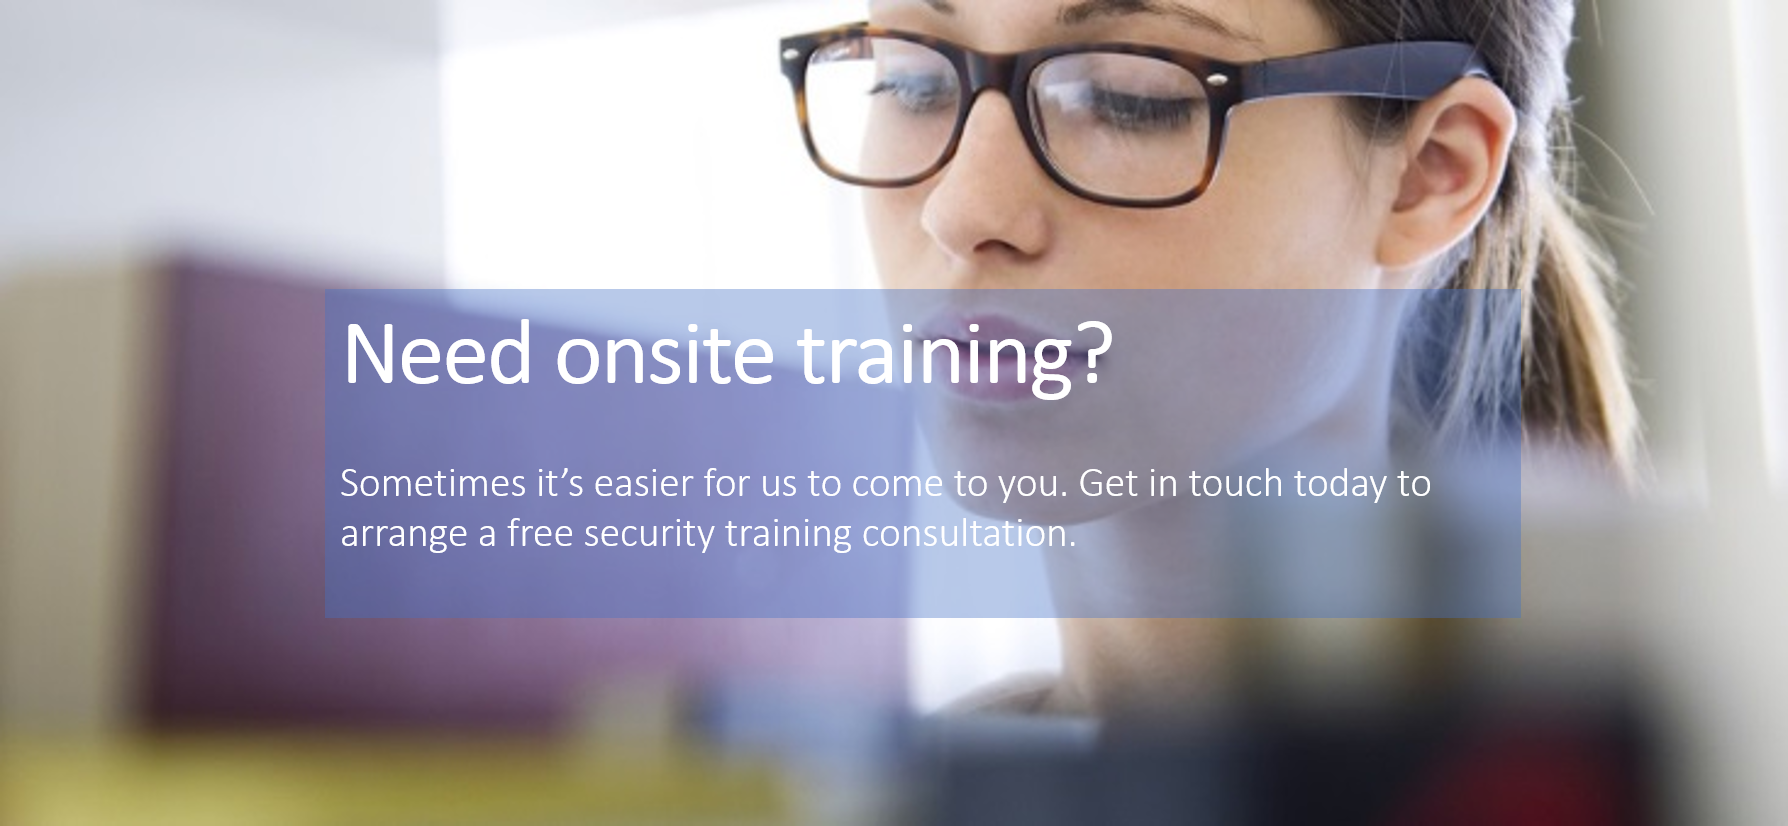 onsite-security-training